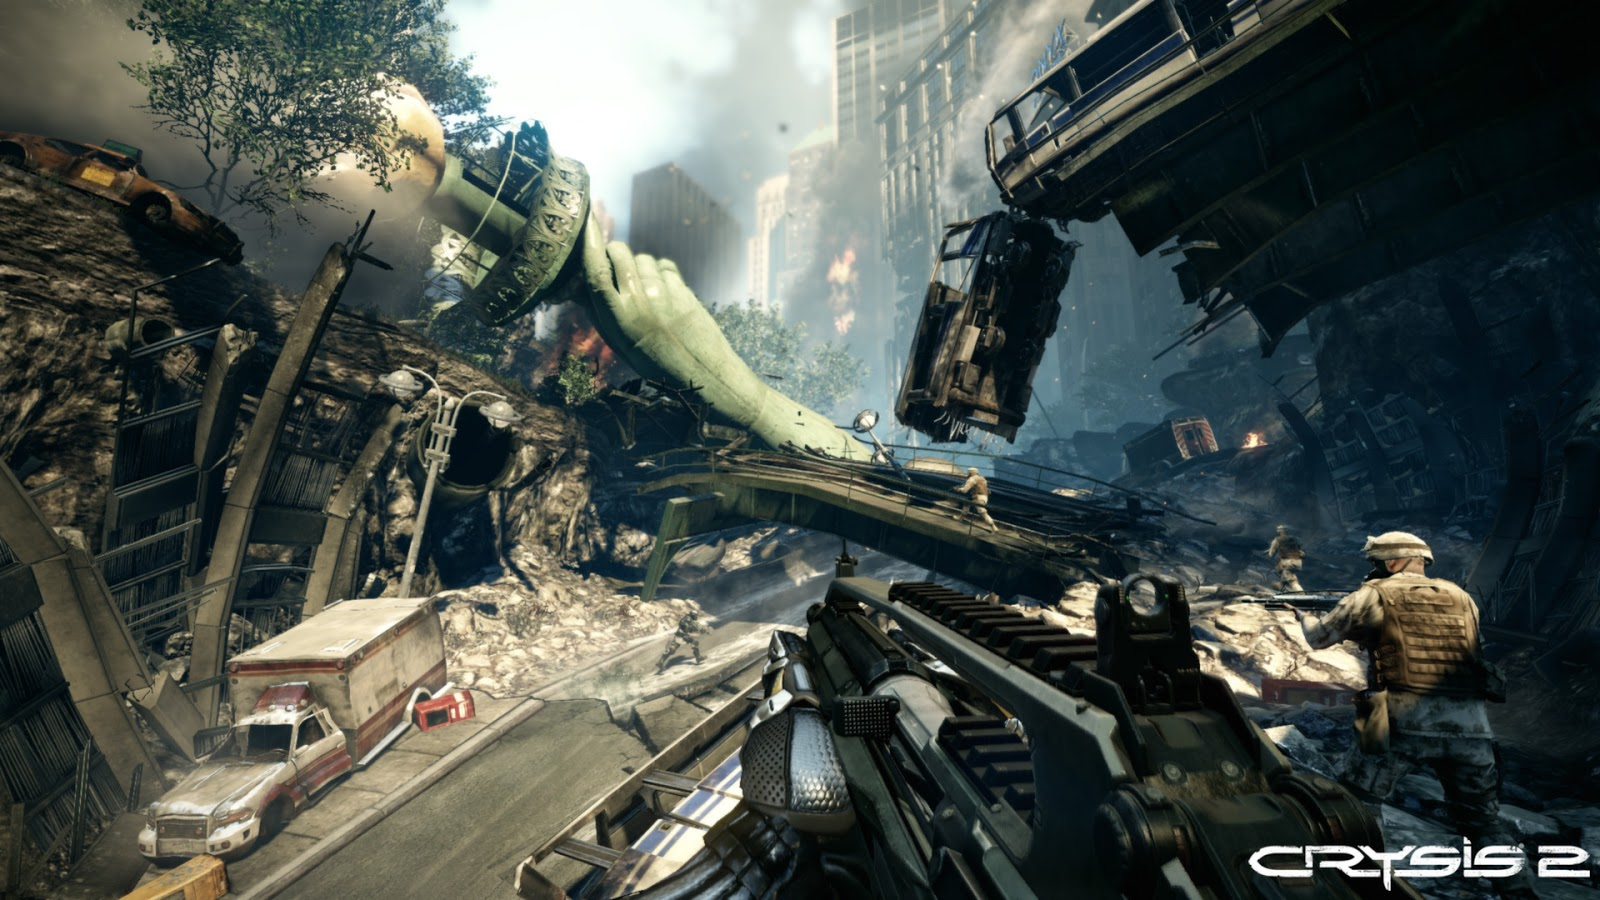 download crysis 3 pc game highly compressed